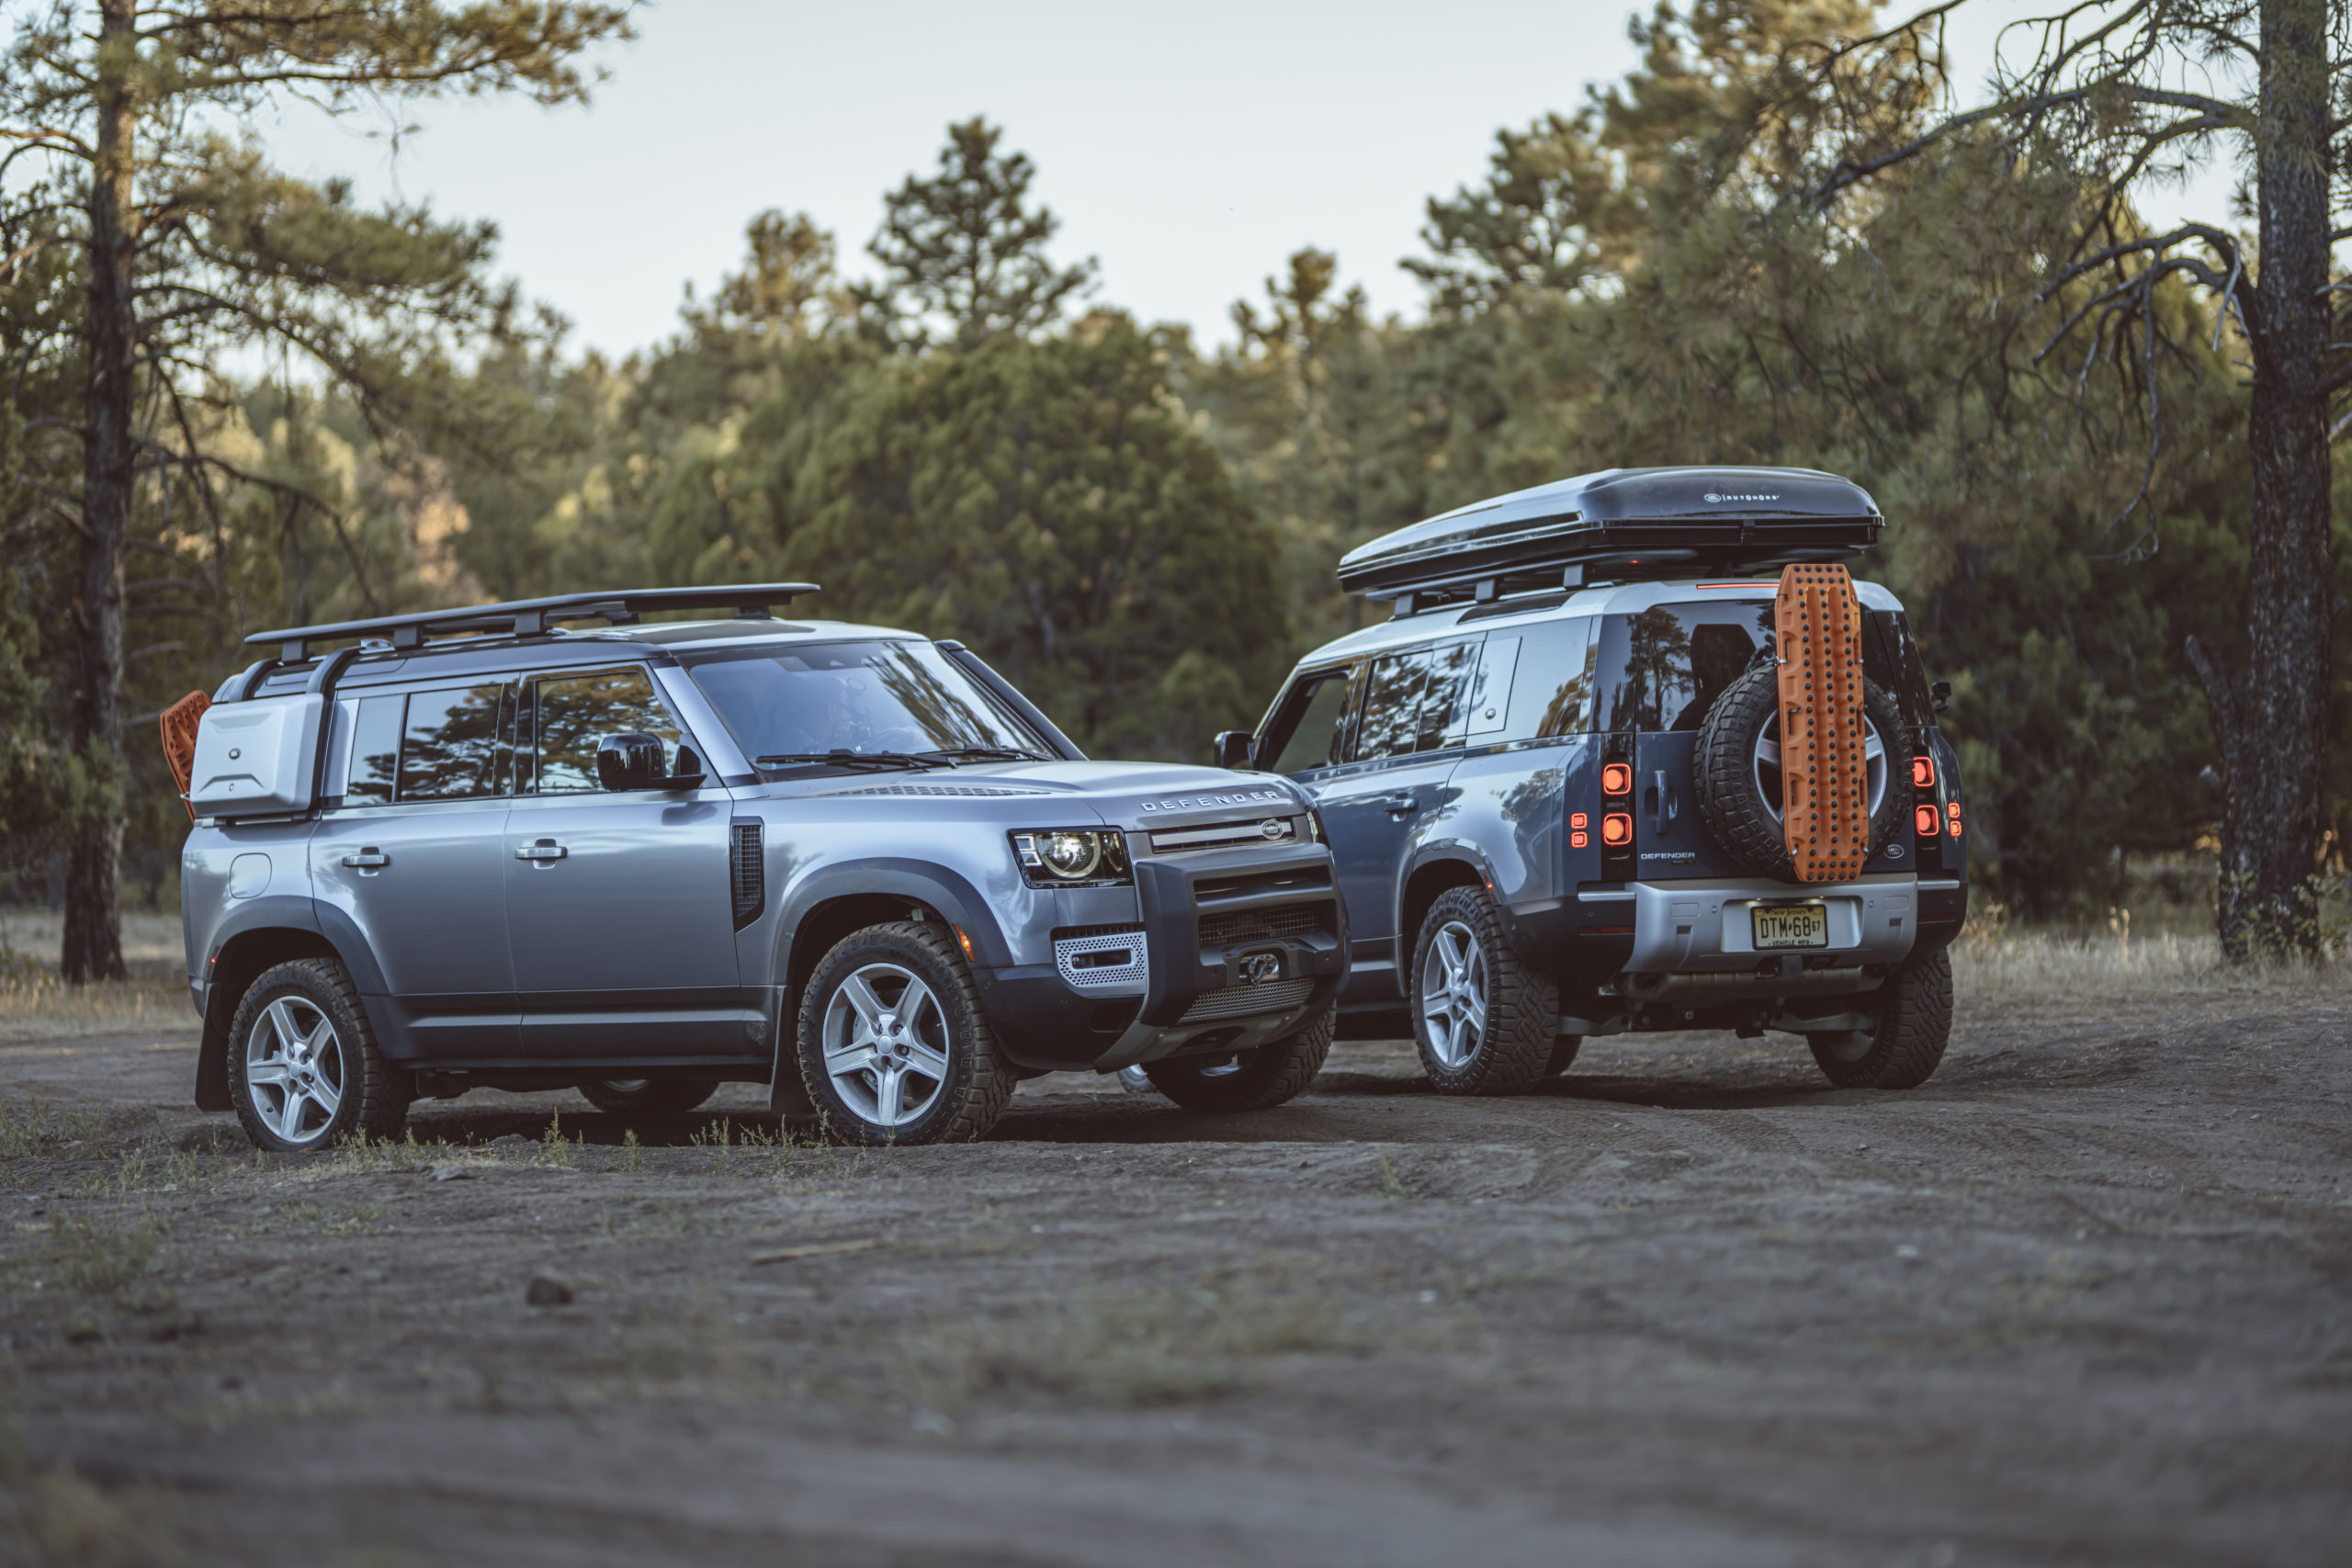 Do You Call This Overlanding? The HISTORY Channel Does